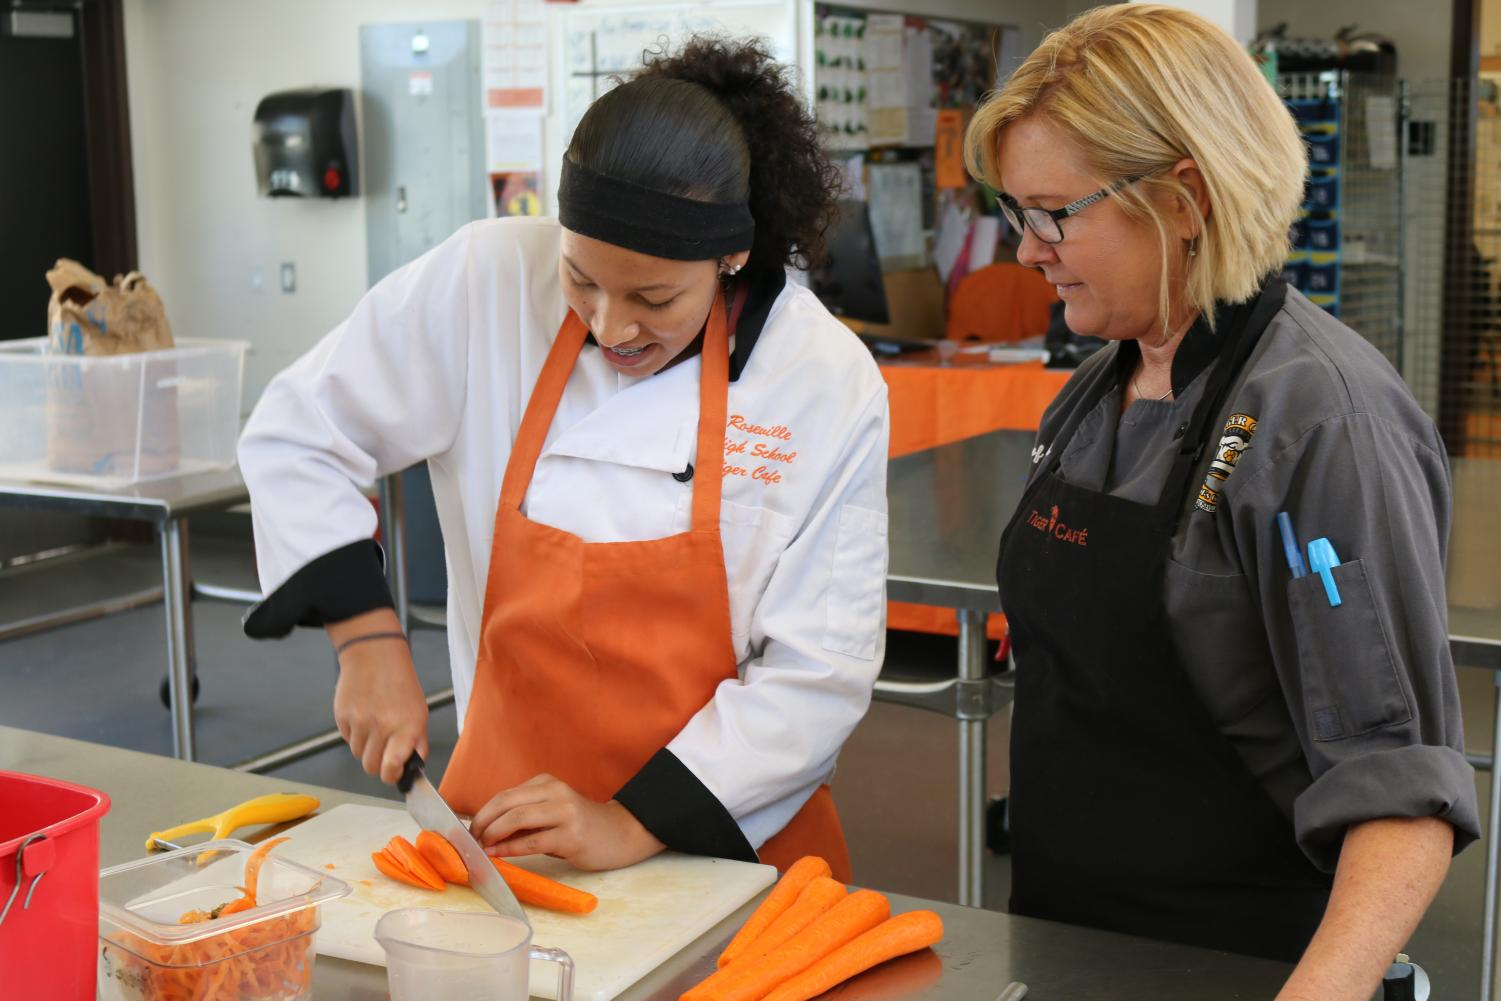 Students in RHS' culinary program work to prepare food in class. According to Culinary Arts teacher Angela Ash, CTE pathways provide students with real world experience.